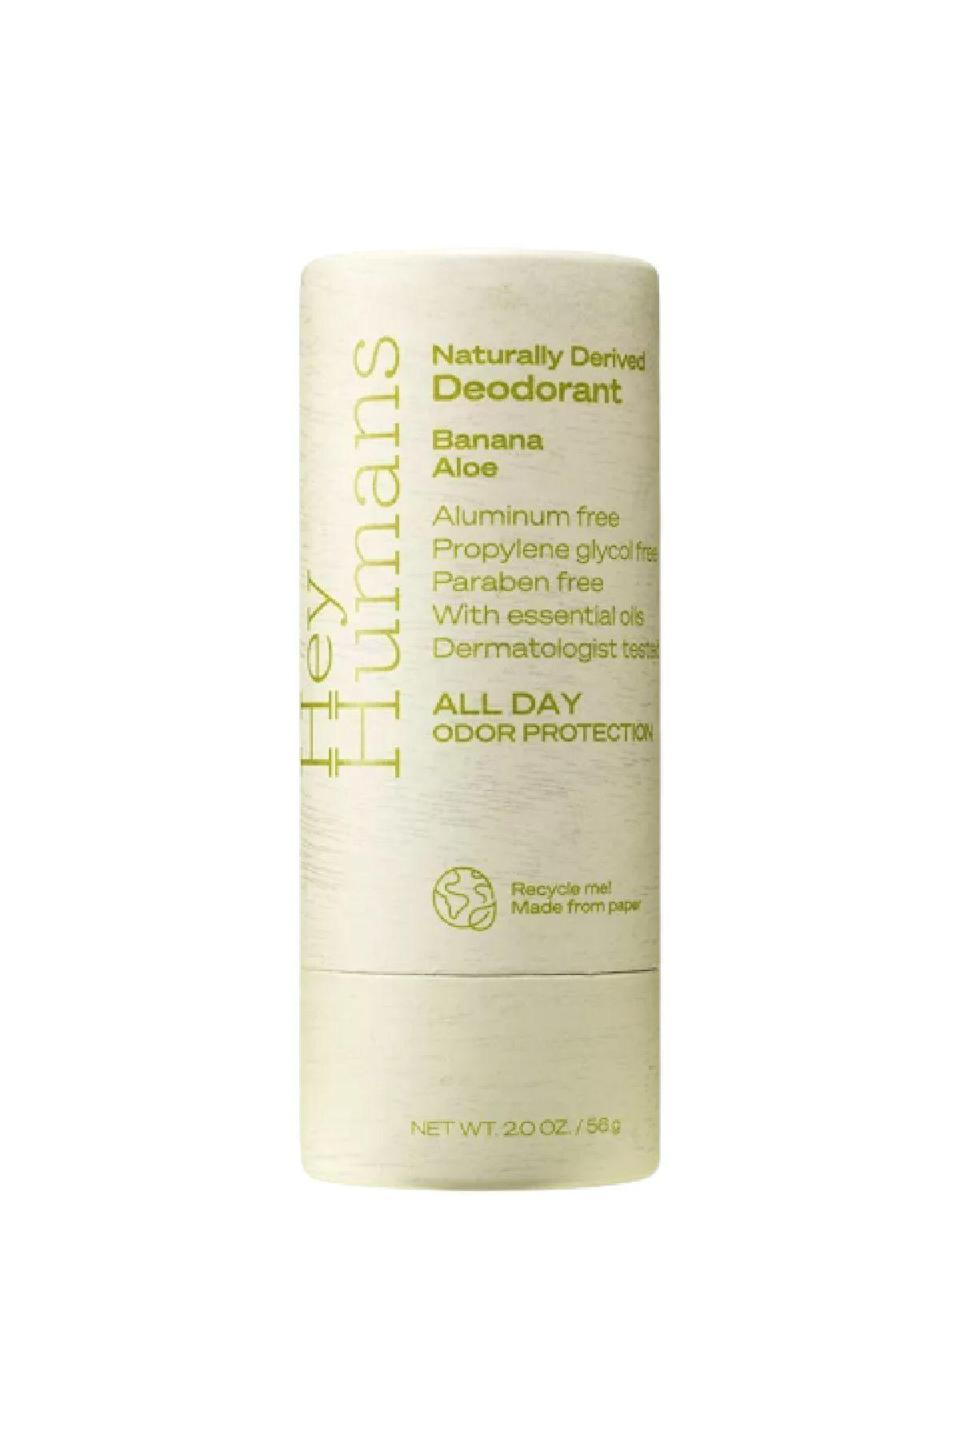 "<p><strong>Hey Humans</strong></p><p>target.com</p><p><strong>$4.99</strong></p><p><a href=""https://www.target.com/p/hey-humans-natural-deodorant-banana-aloe-2oz/-/A-80585798"" rel=""nofollow noopener"" target=""_blank"" data-ylk=""slk:SHOP IT"" class=""link rapid-noclick-resp"">SHOP IT</a></p><p>Jada Pinkett Smith's personal care product line is...excellent! (And plastic-free, with every single bit of packaging 99 percent recyclable or 100 percent biodegradable.) This naturally-derived deodorant is vegan and free of parabens and aluminums, but it's the scents that's really hit. Banana aloe, rosewater ginger or apple matcha? Don't mind if I do. </p>"